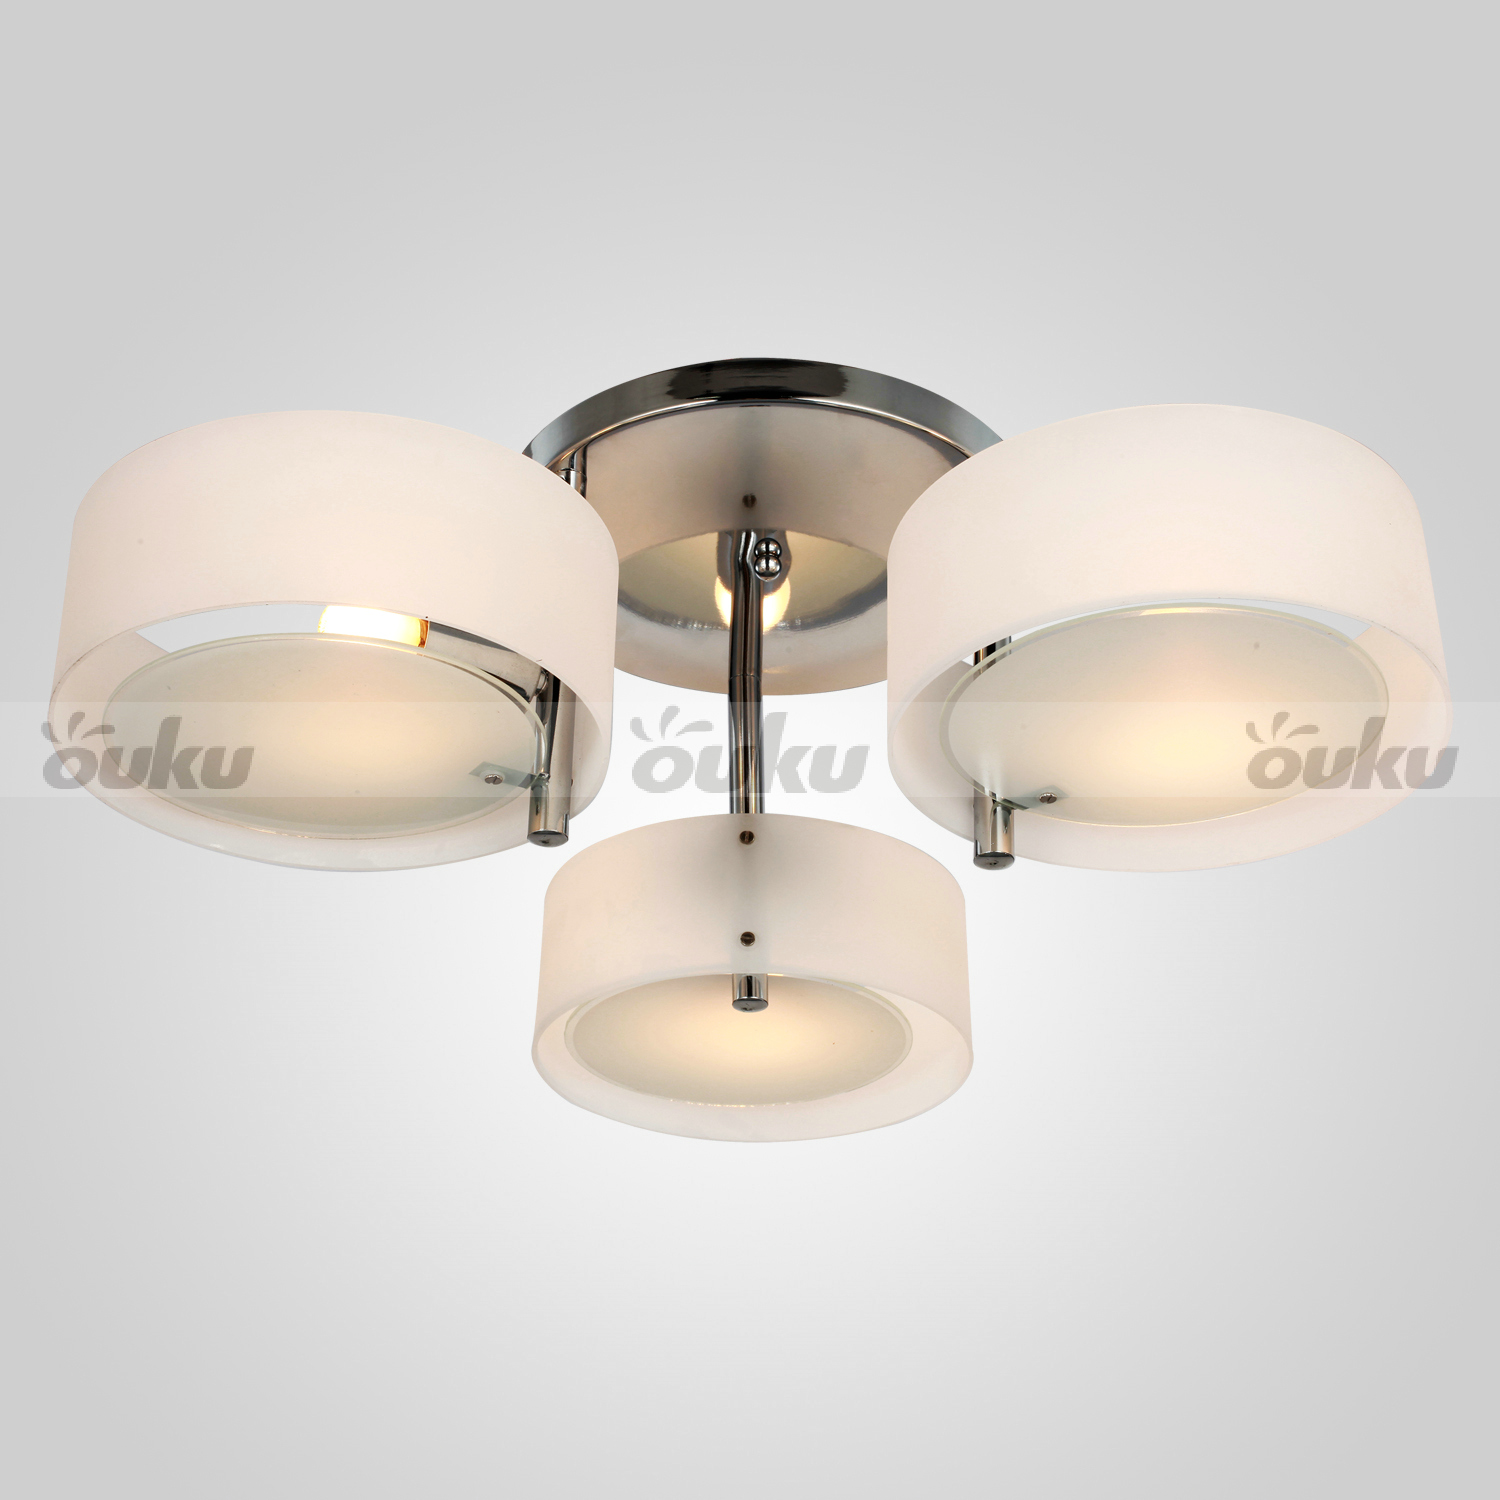 Fixture pendant lamp chandelier ceiling lighting round 3 for A lamp and fixture